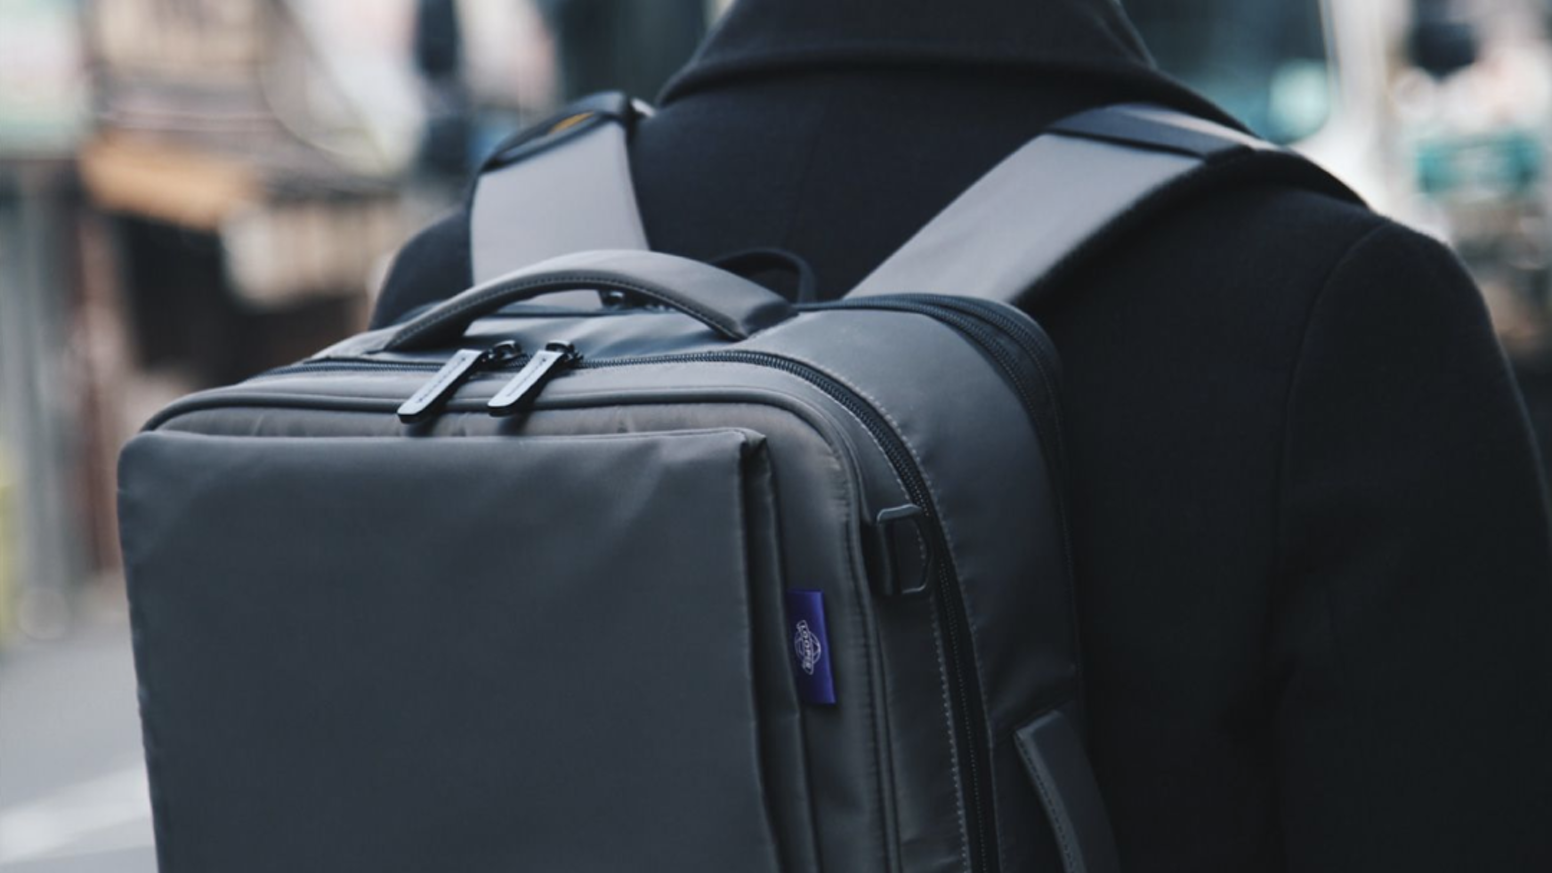 A luggage, but not a luggage. A backpack that suits the modern generation of tech savvy millennials and those that take short trips.